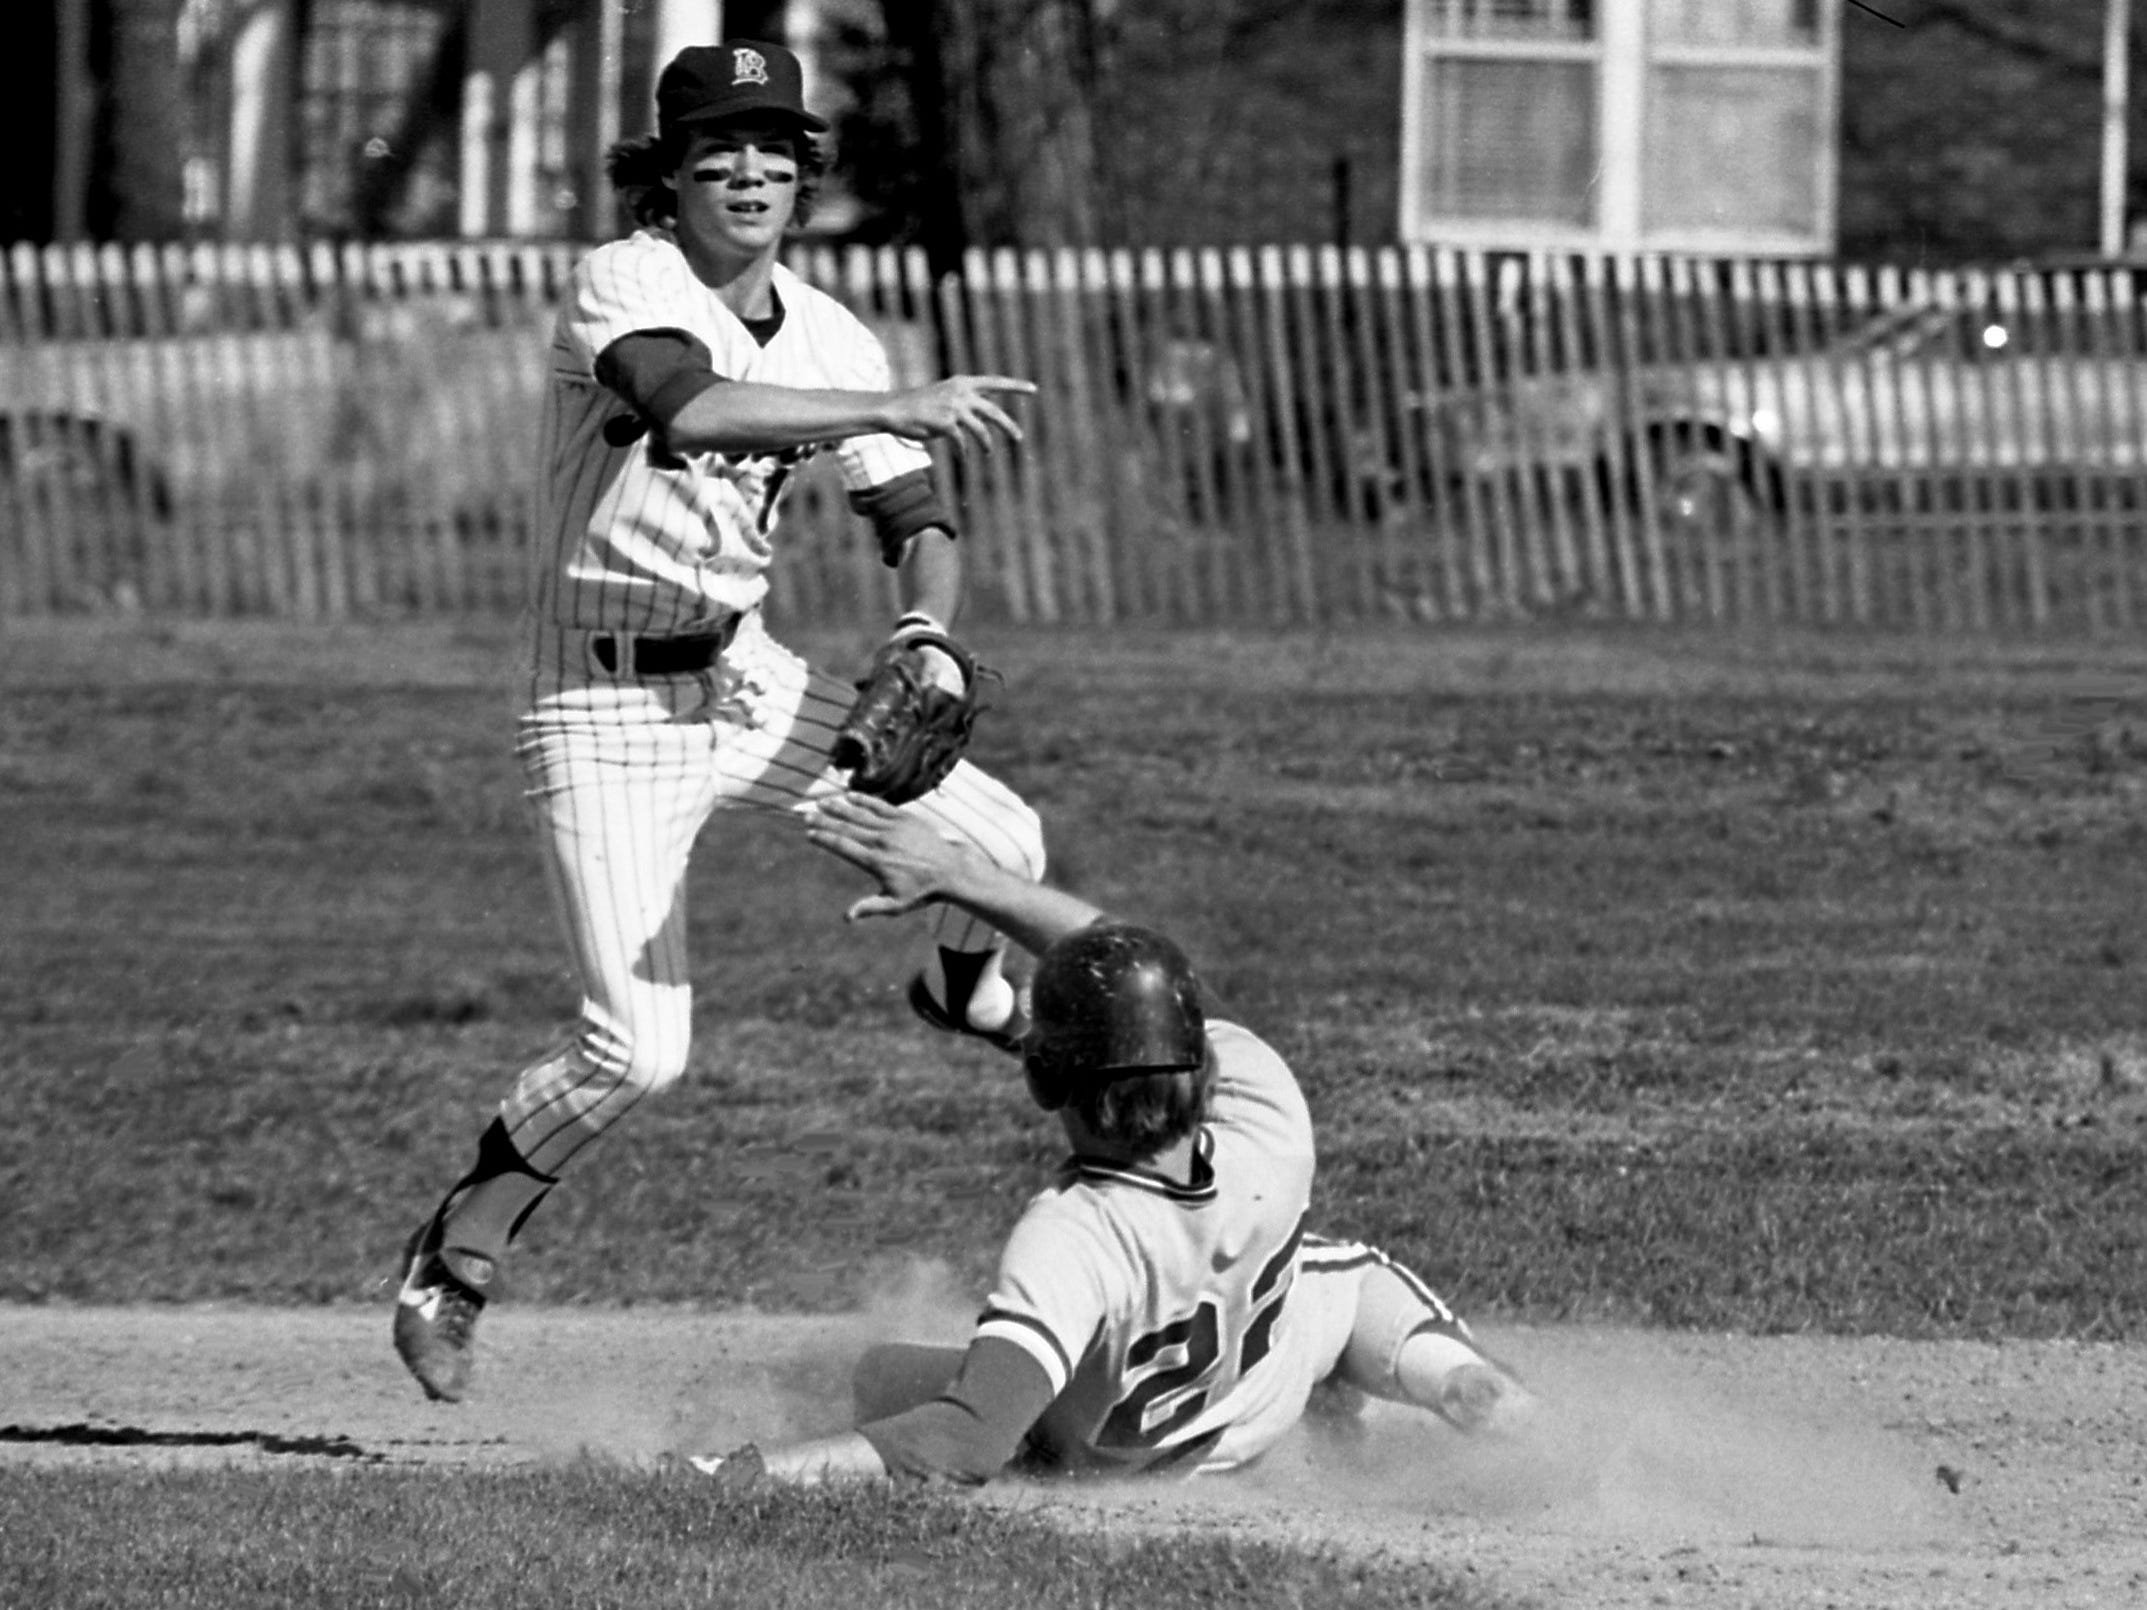 Belmont College second baseman Doug Clunan gets his throw away to first base as Trevecca College base runner Greg Gunnells slides into the bag. The double play attempt failed, but Belmont won their city battle 8-0 on their field April 5, 1979.